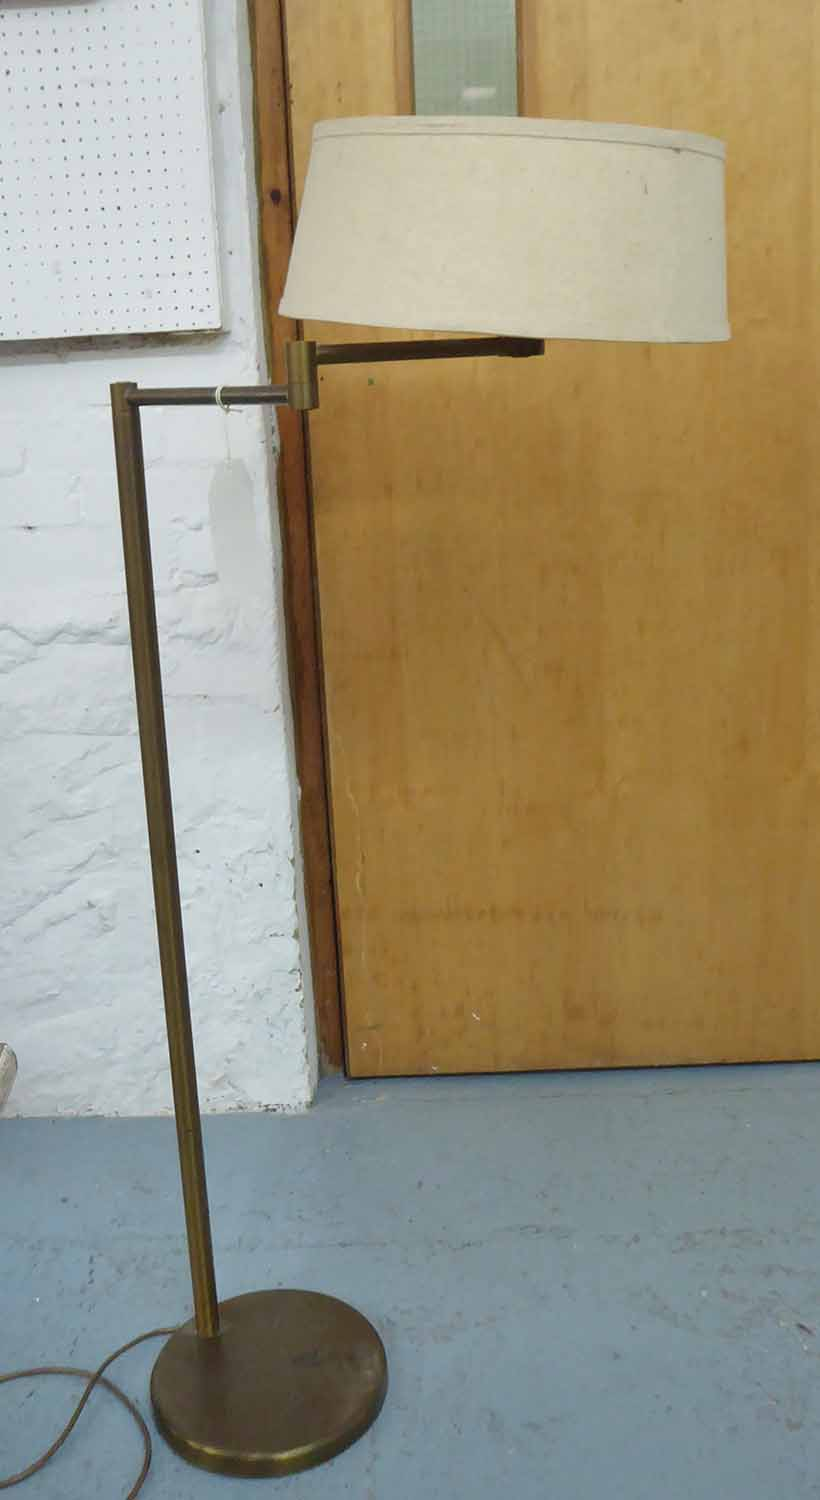 Lot 23 - FLOOR READING LAMP, brass with adjustable arm, 104cm H.